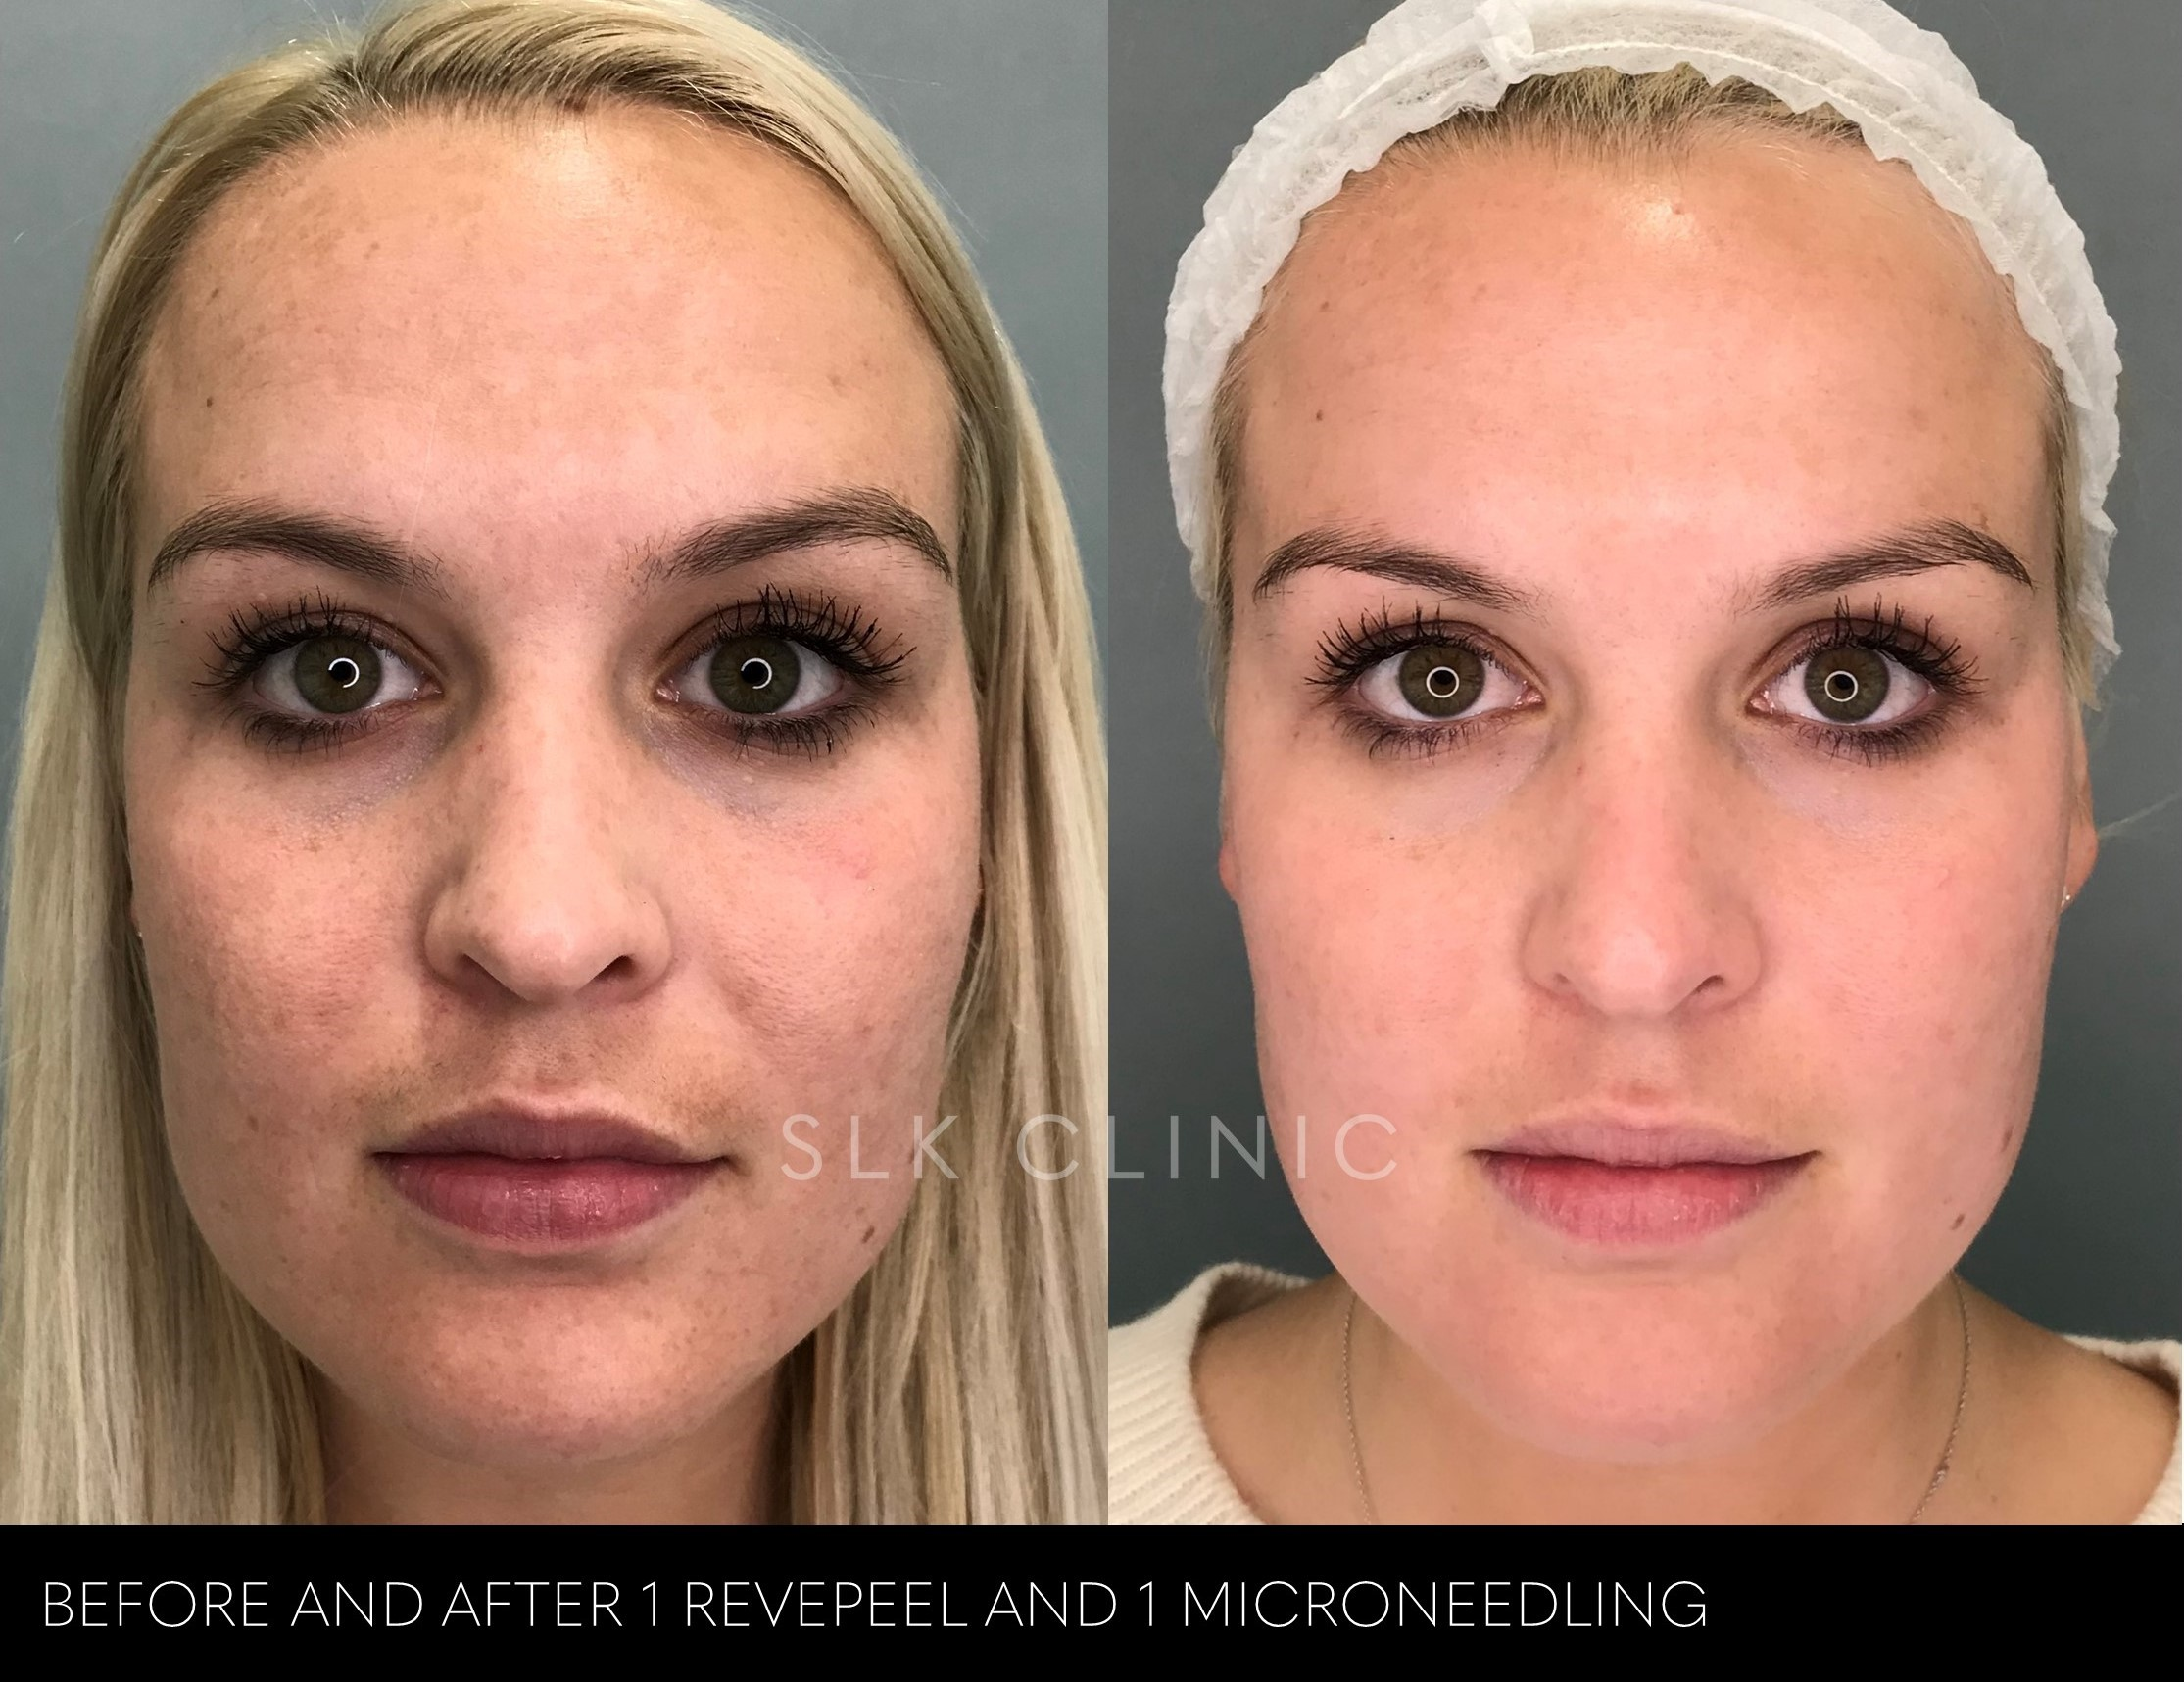 before and after photos of one revepeel and microneedling combination treatment-1